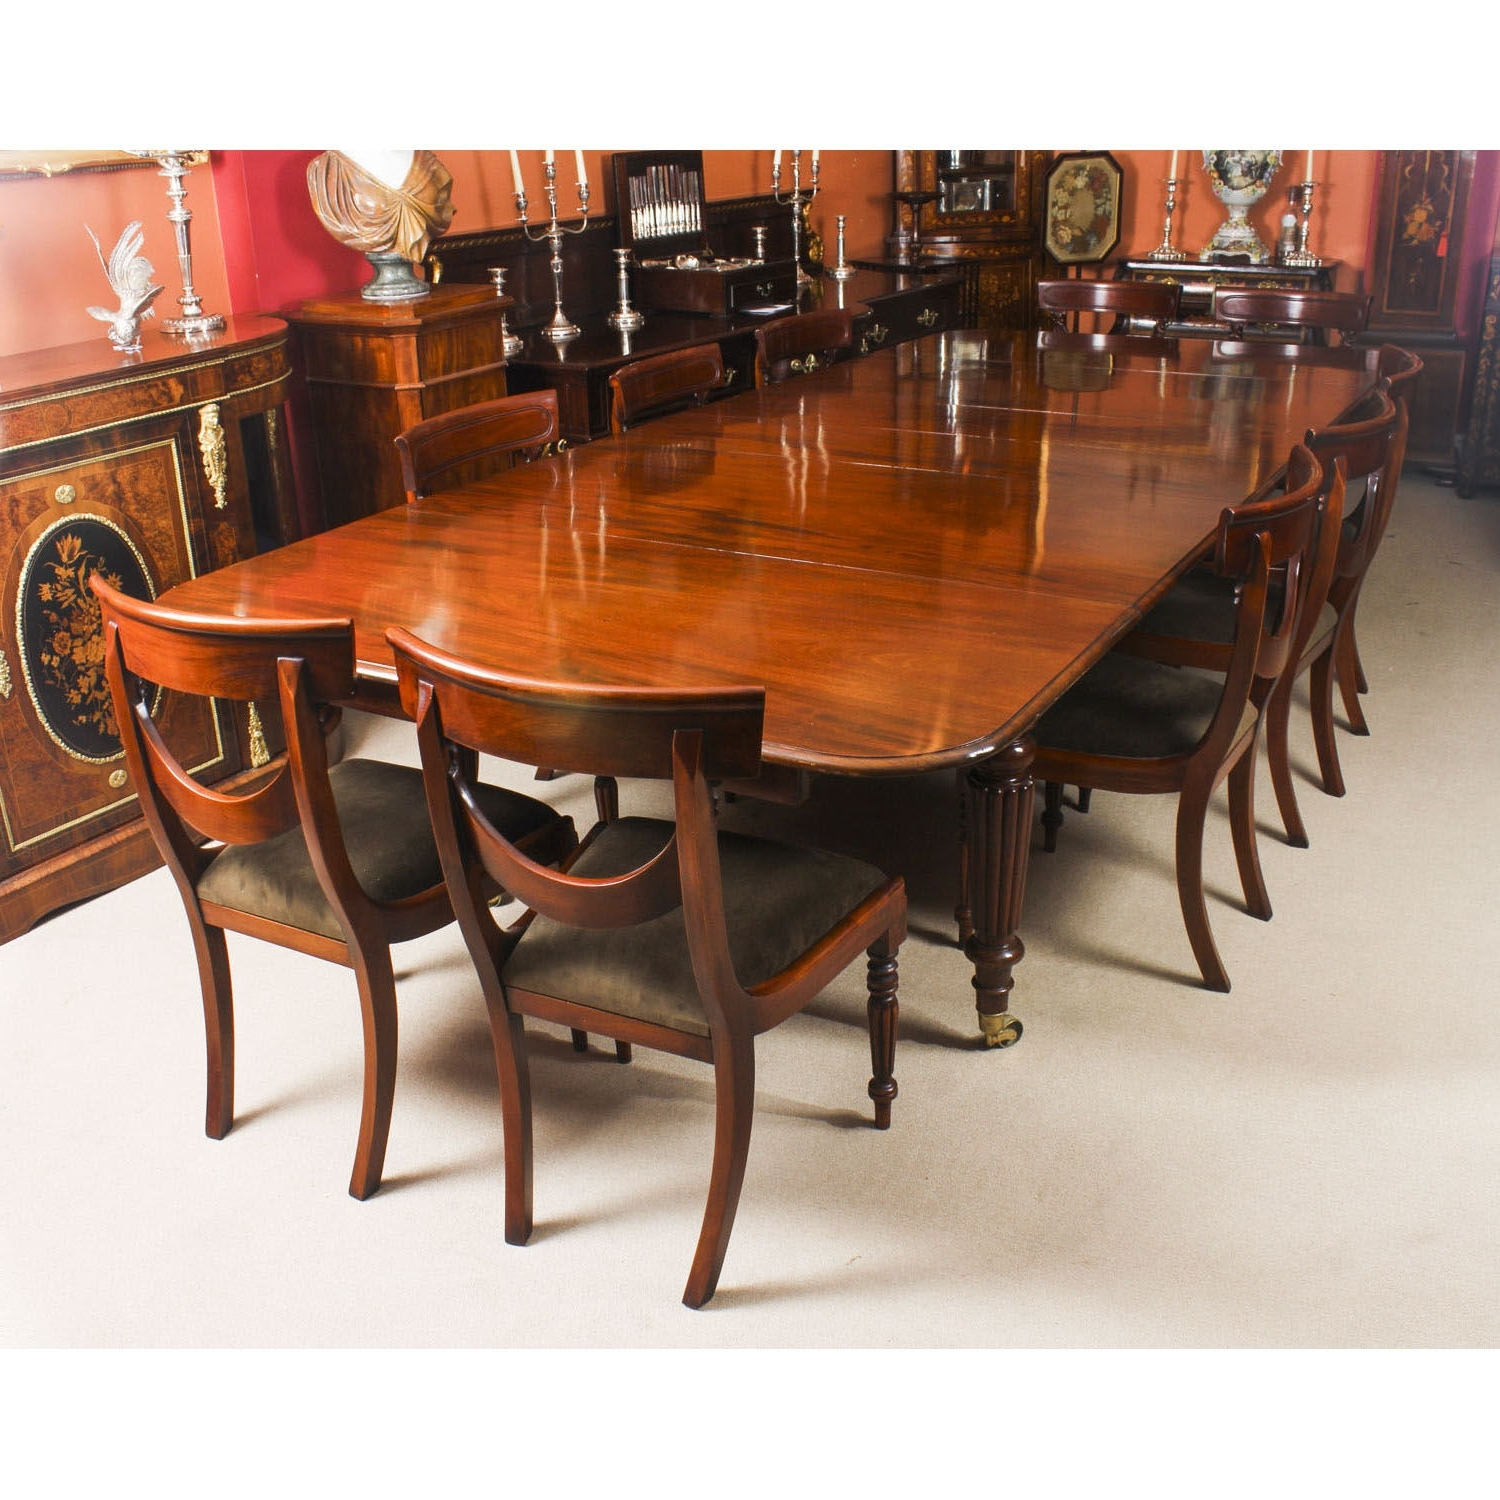 Newest Mahogany Extending Dining Tables And Chairs inside Antique 11 Ft Flame Mahogany Extending Dining Table 19Th Century